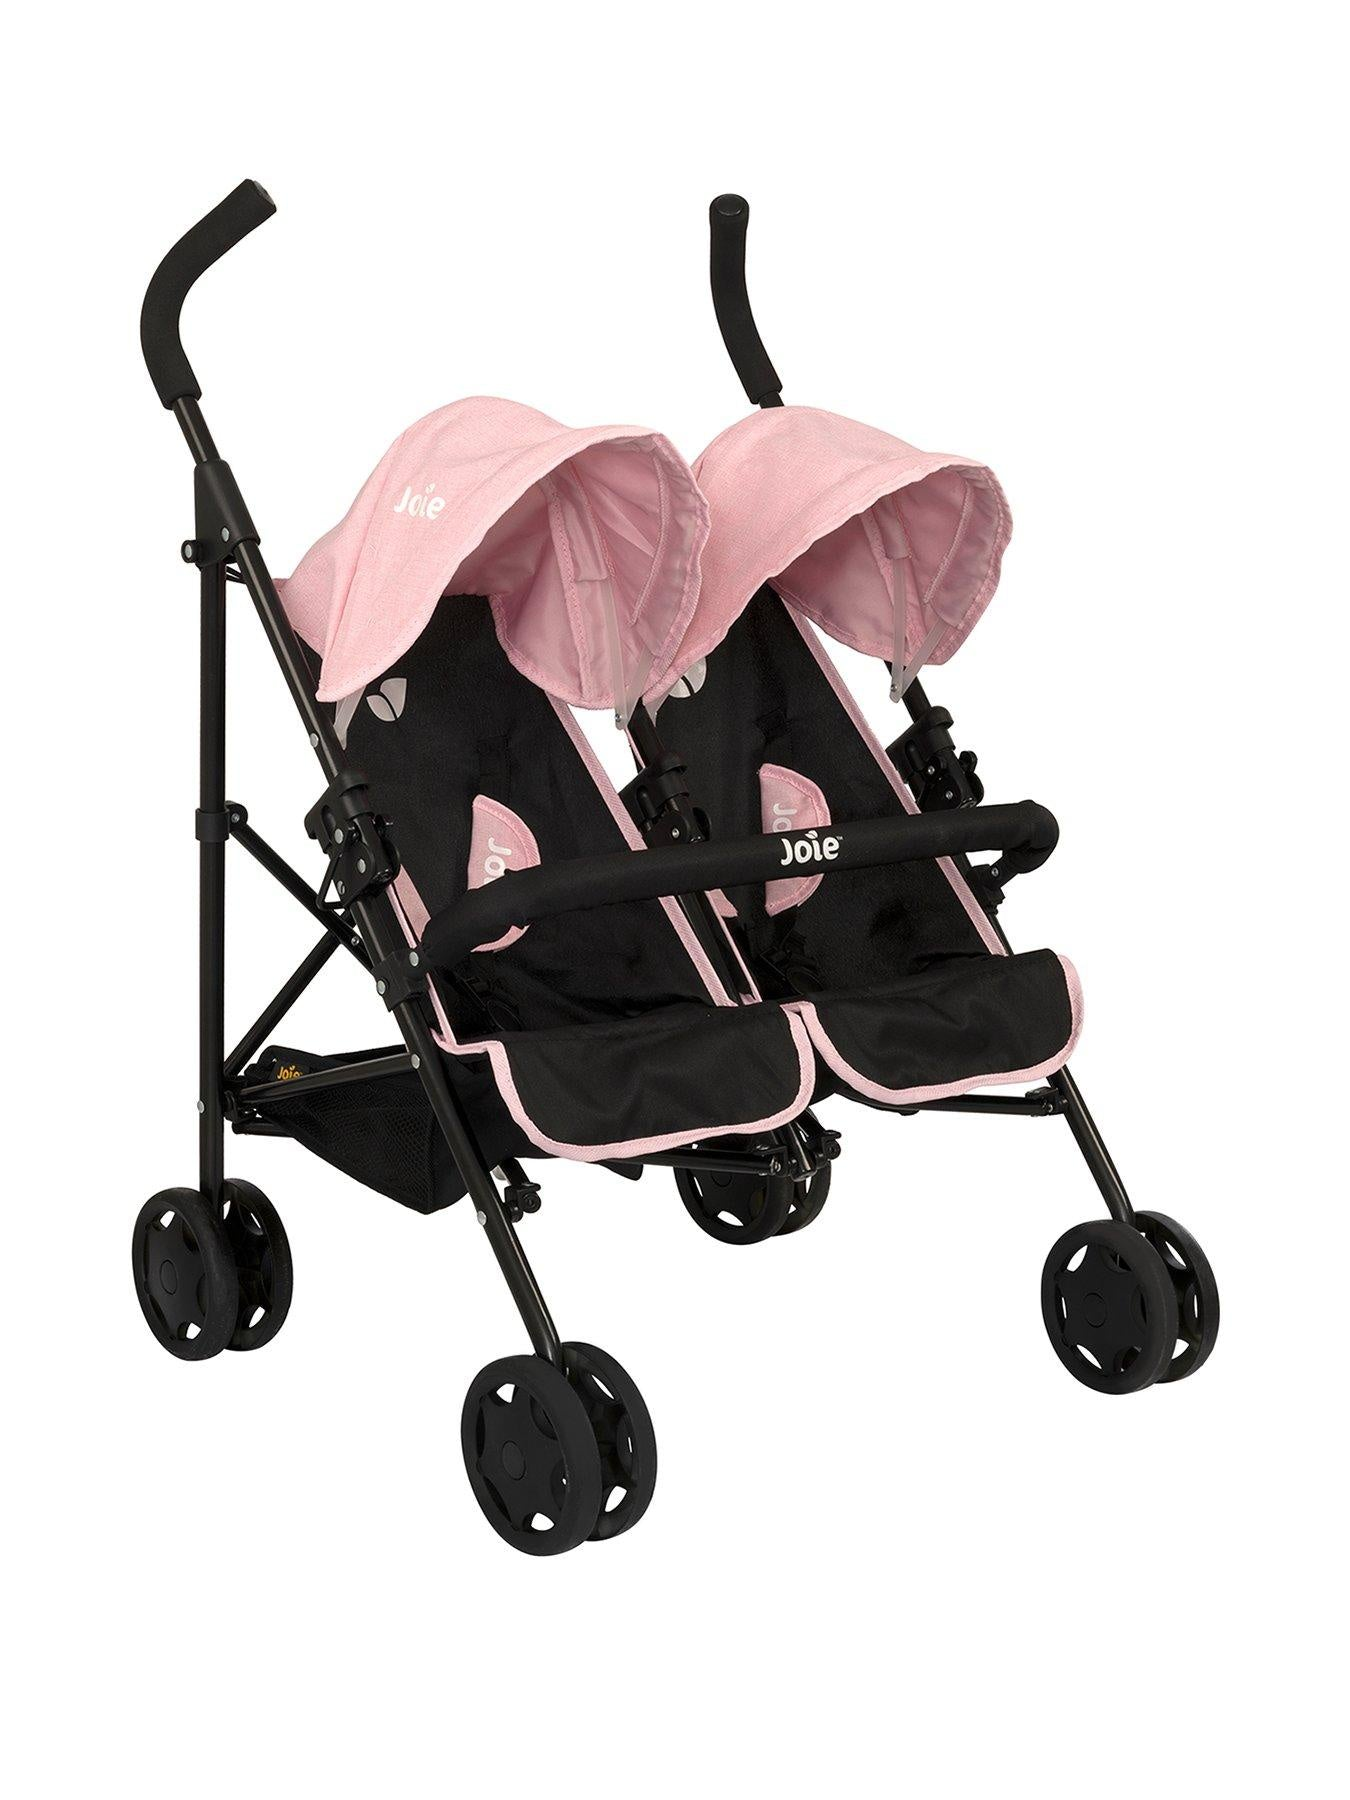 Joie Junior Twin Stroller Dolls Pram